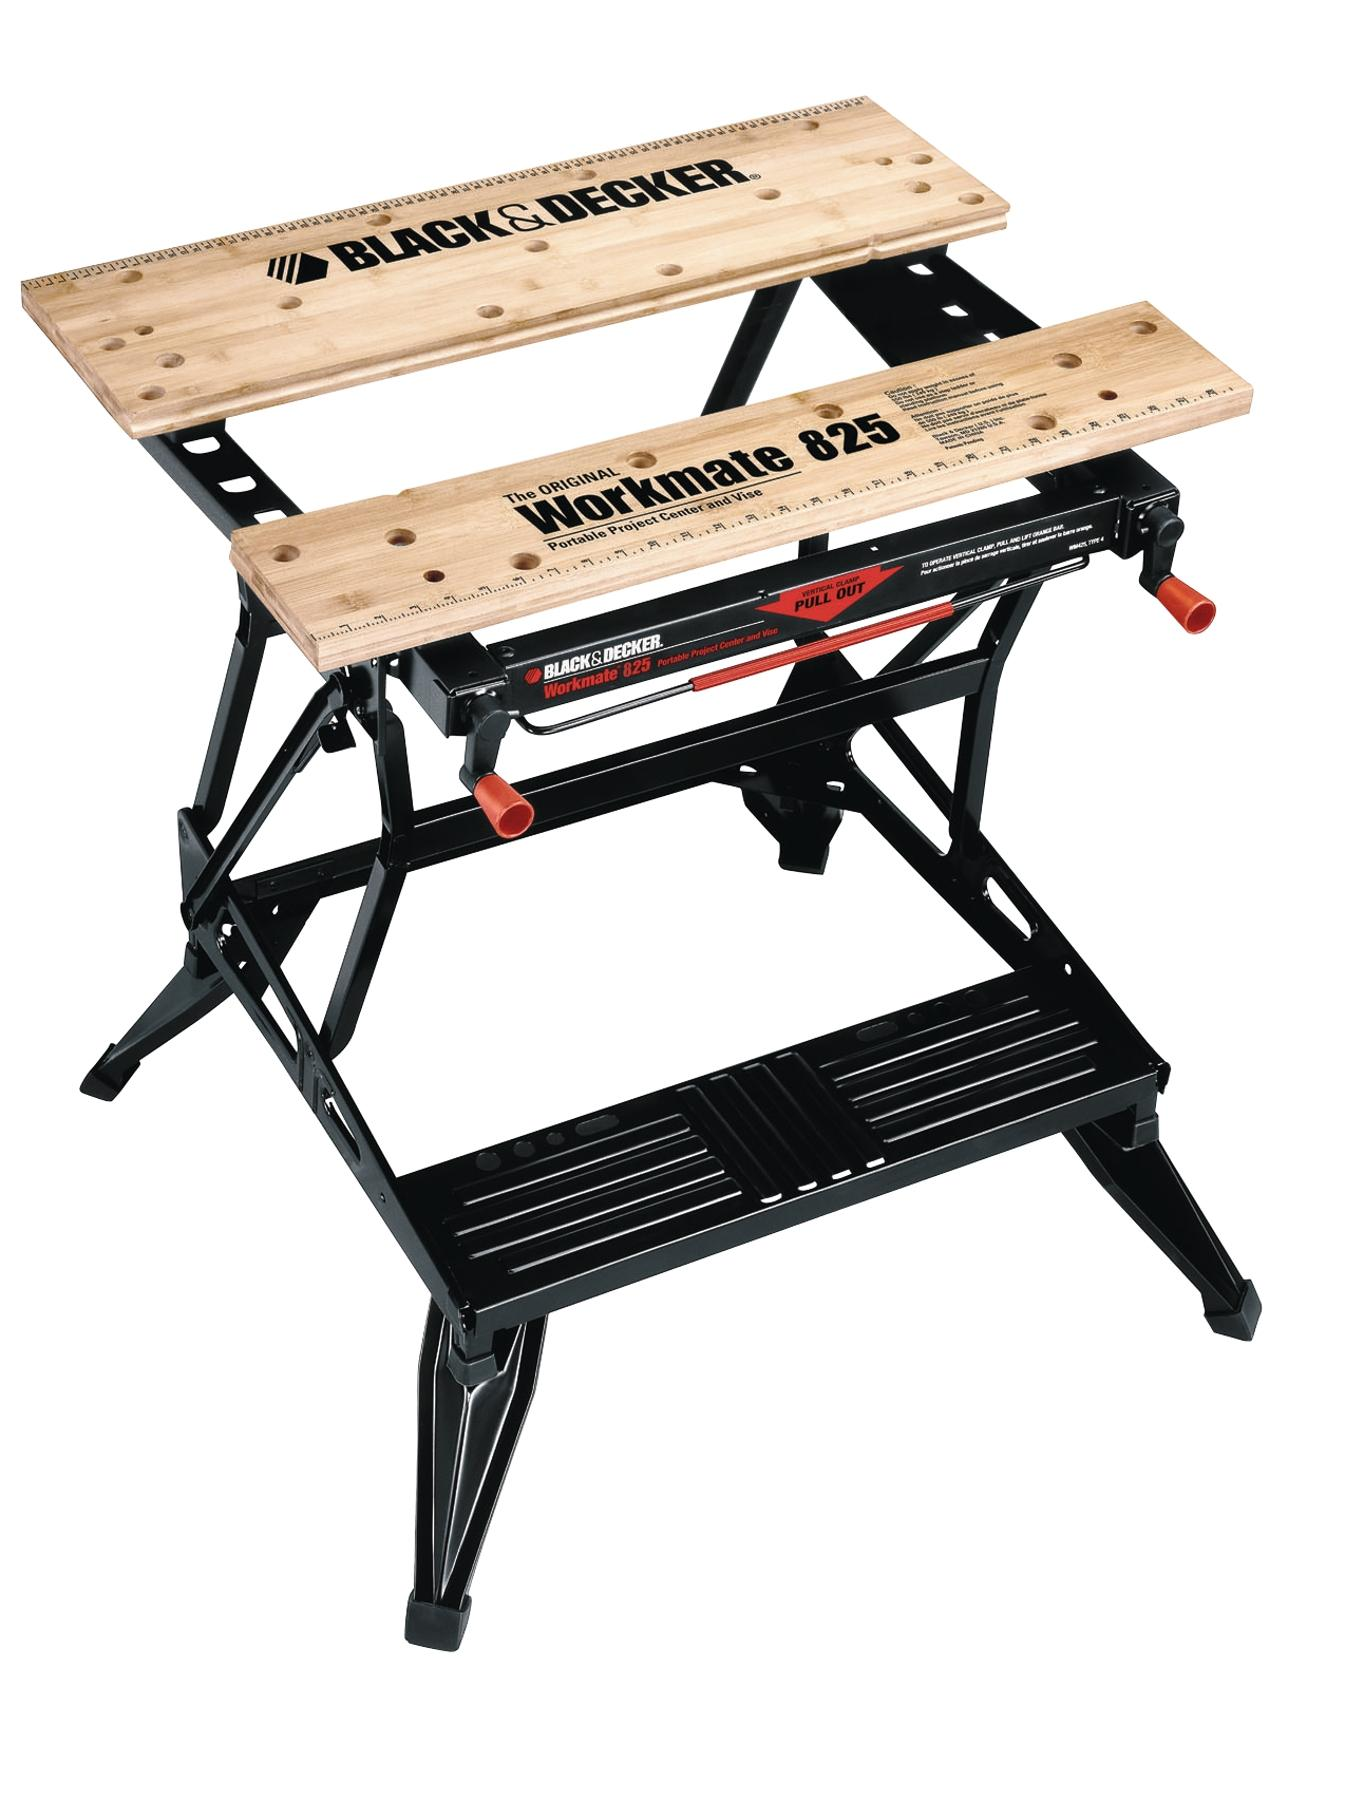 Black & Decker WM825 Workmate Work Bench